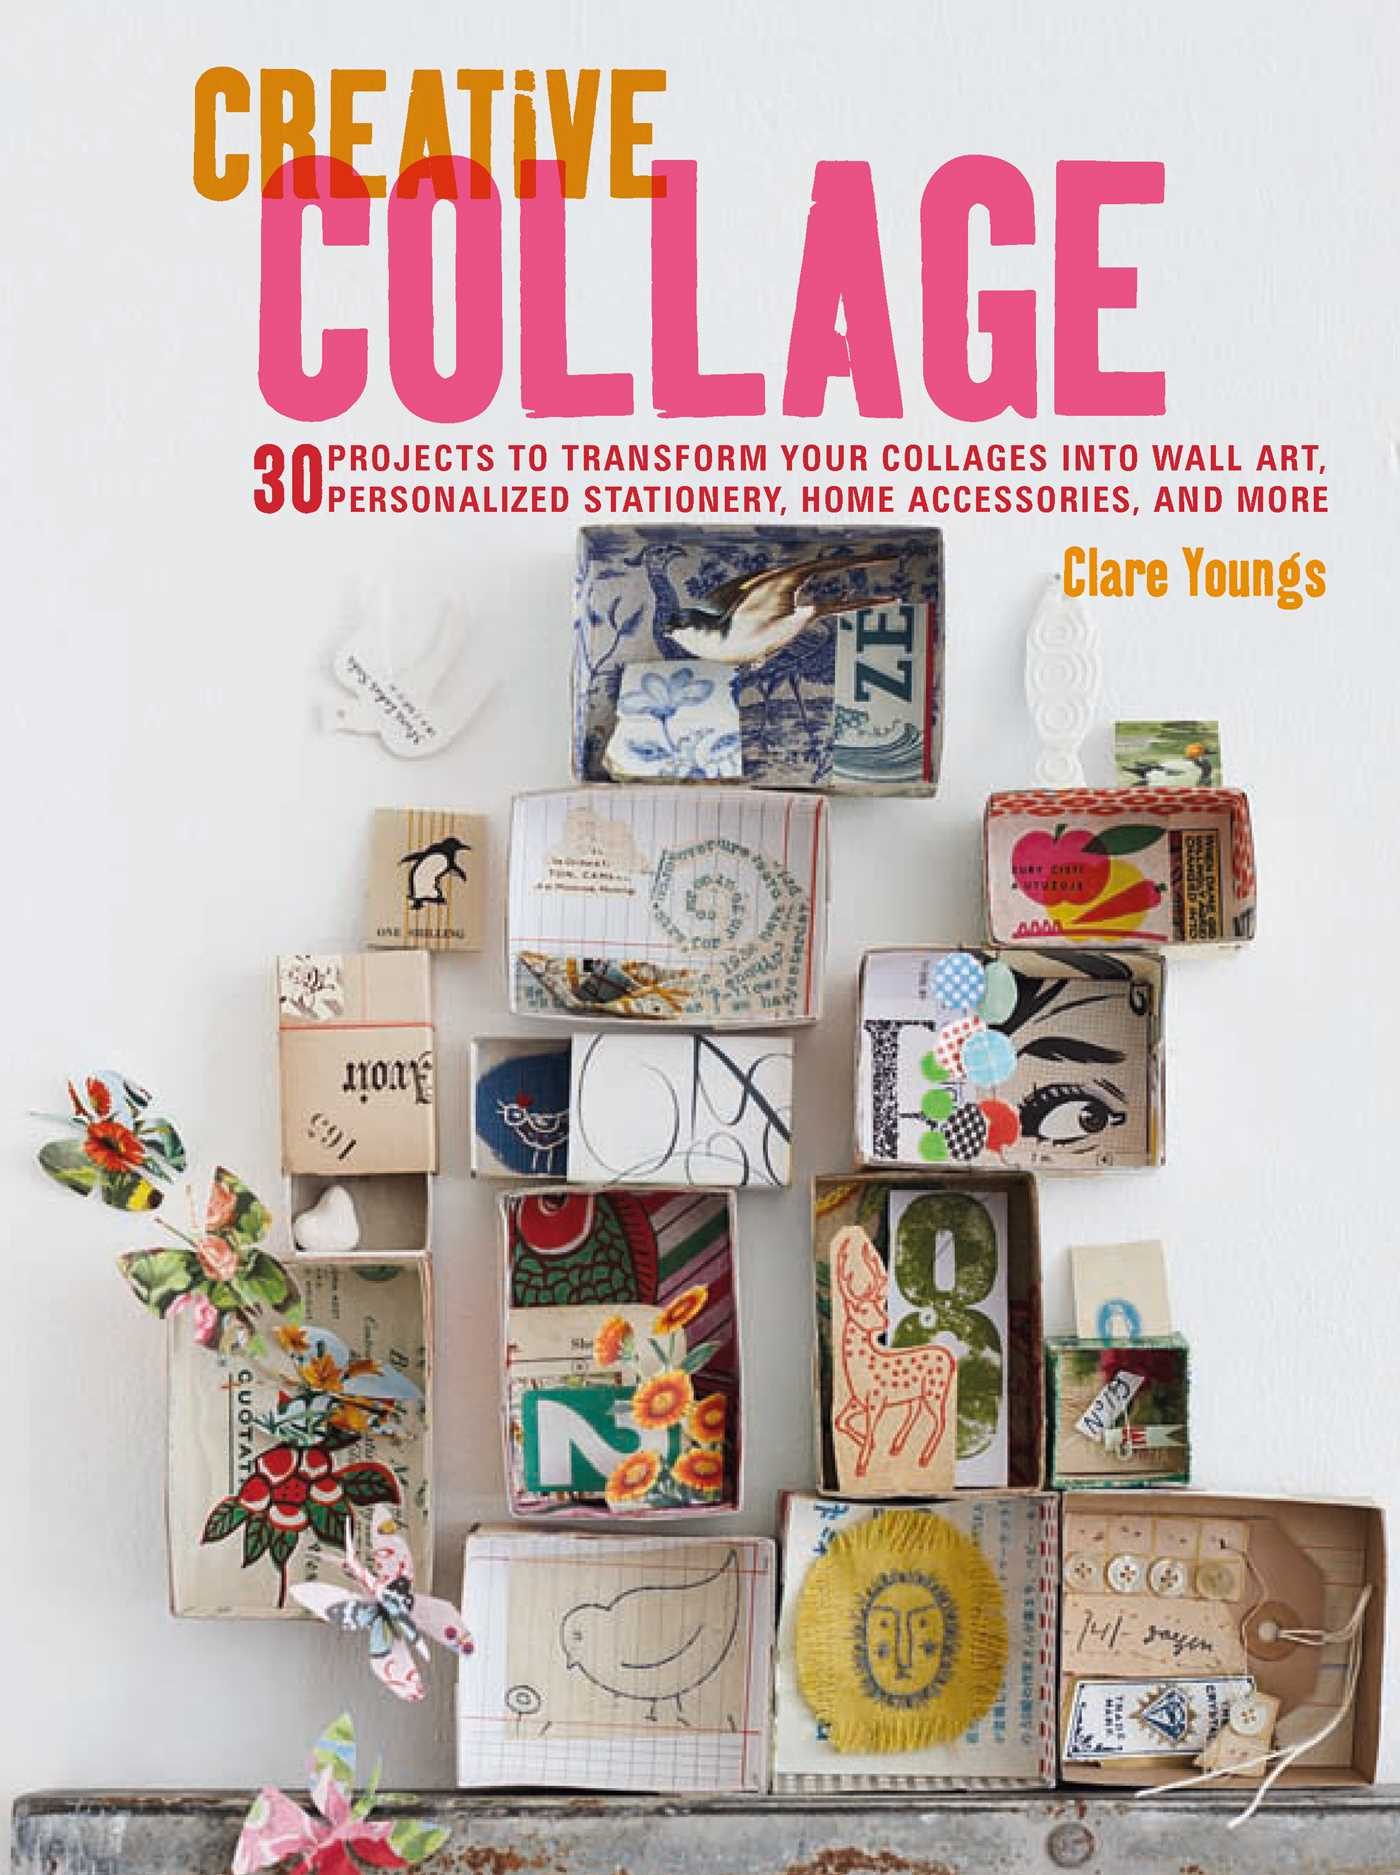 Make Collage Book Cover : Creative collage book by clare youngs official